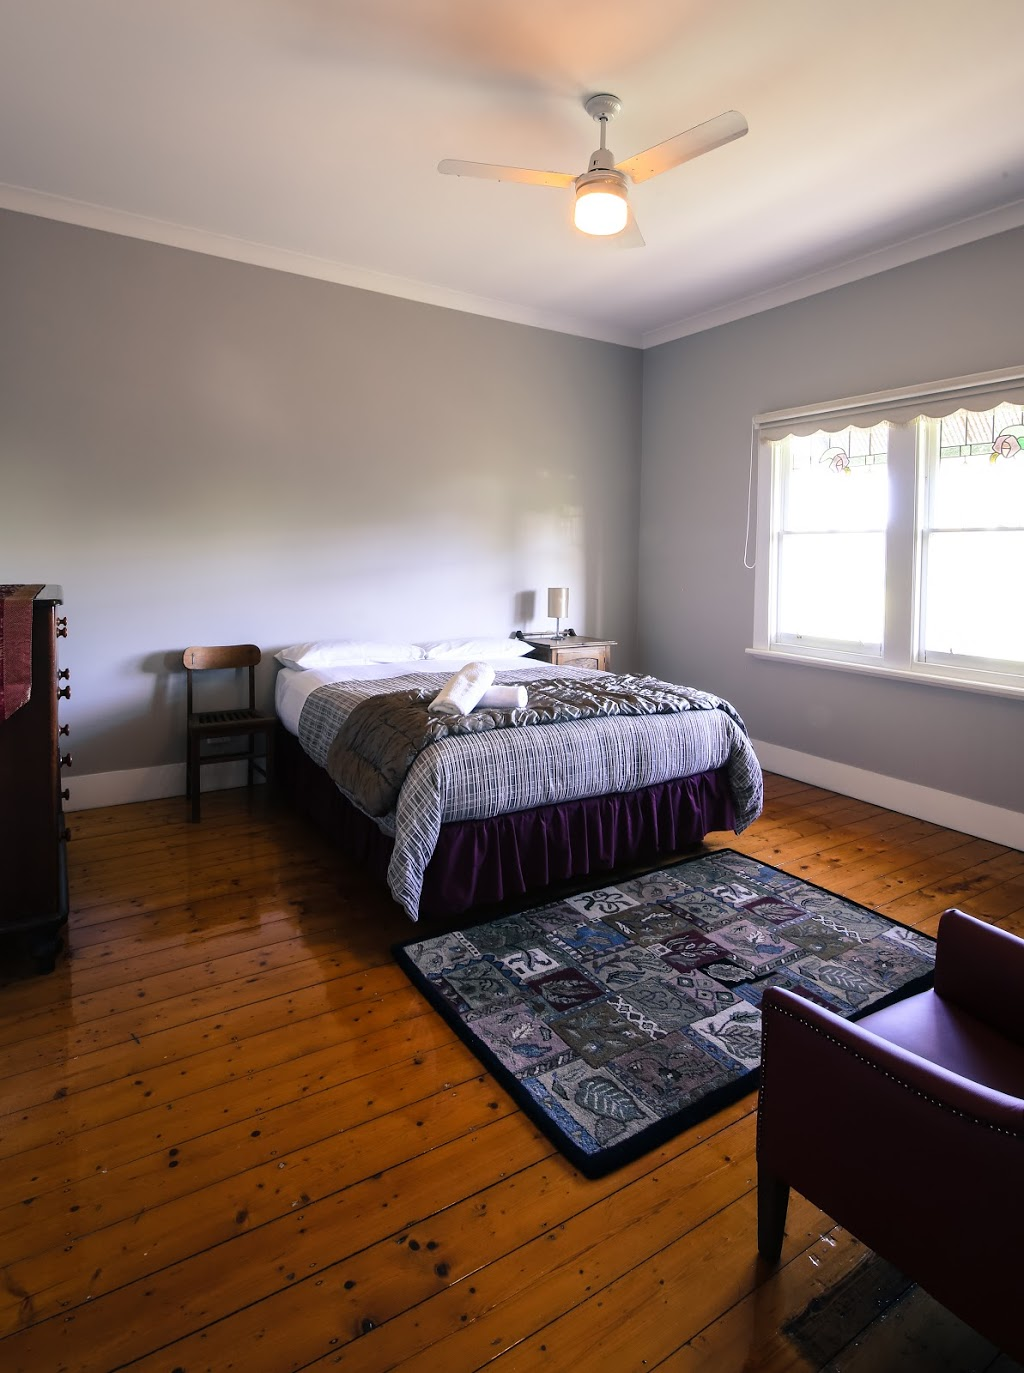 Catherine Normane Holiday House | lodging | 27 Philip St, Port Fairy VIC 3284, Australia | 0438017225 OR +61 438 017 225